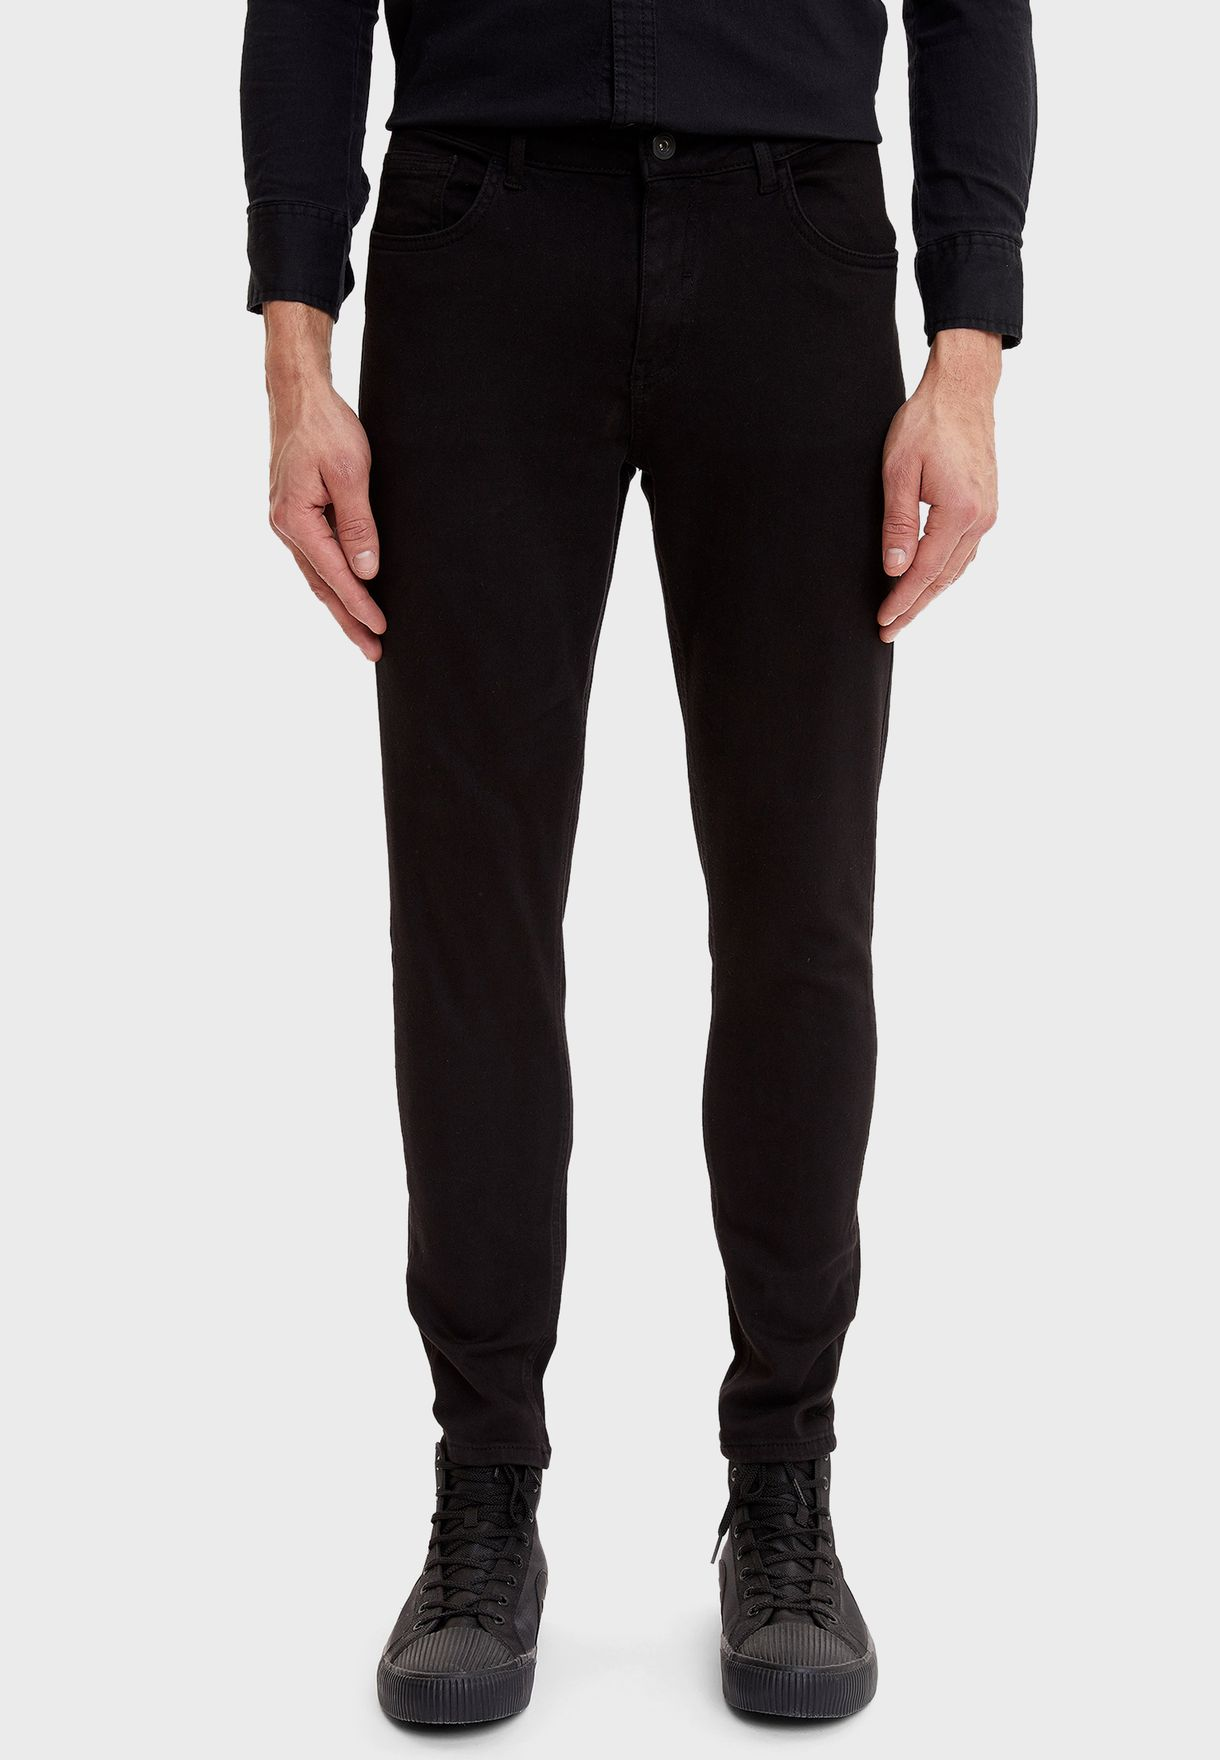 Essential Skinny Fit Trousers